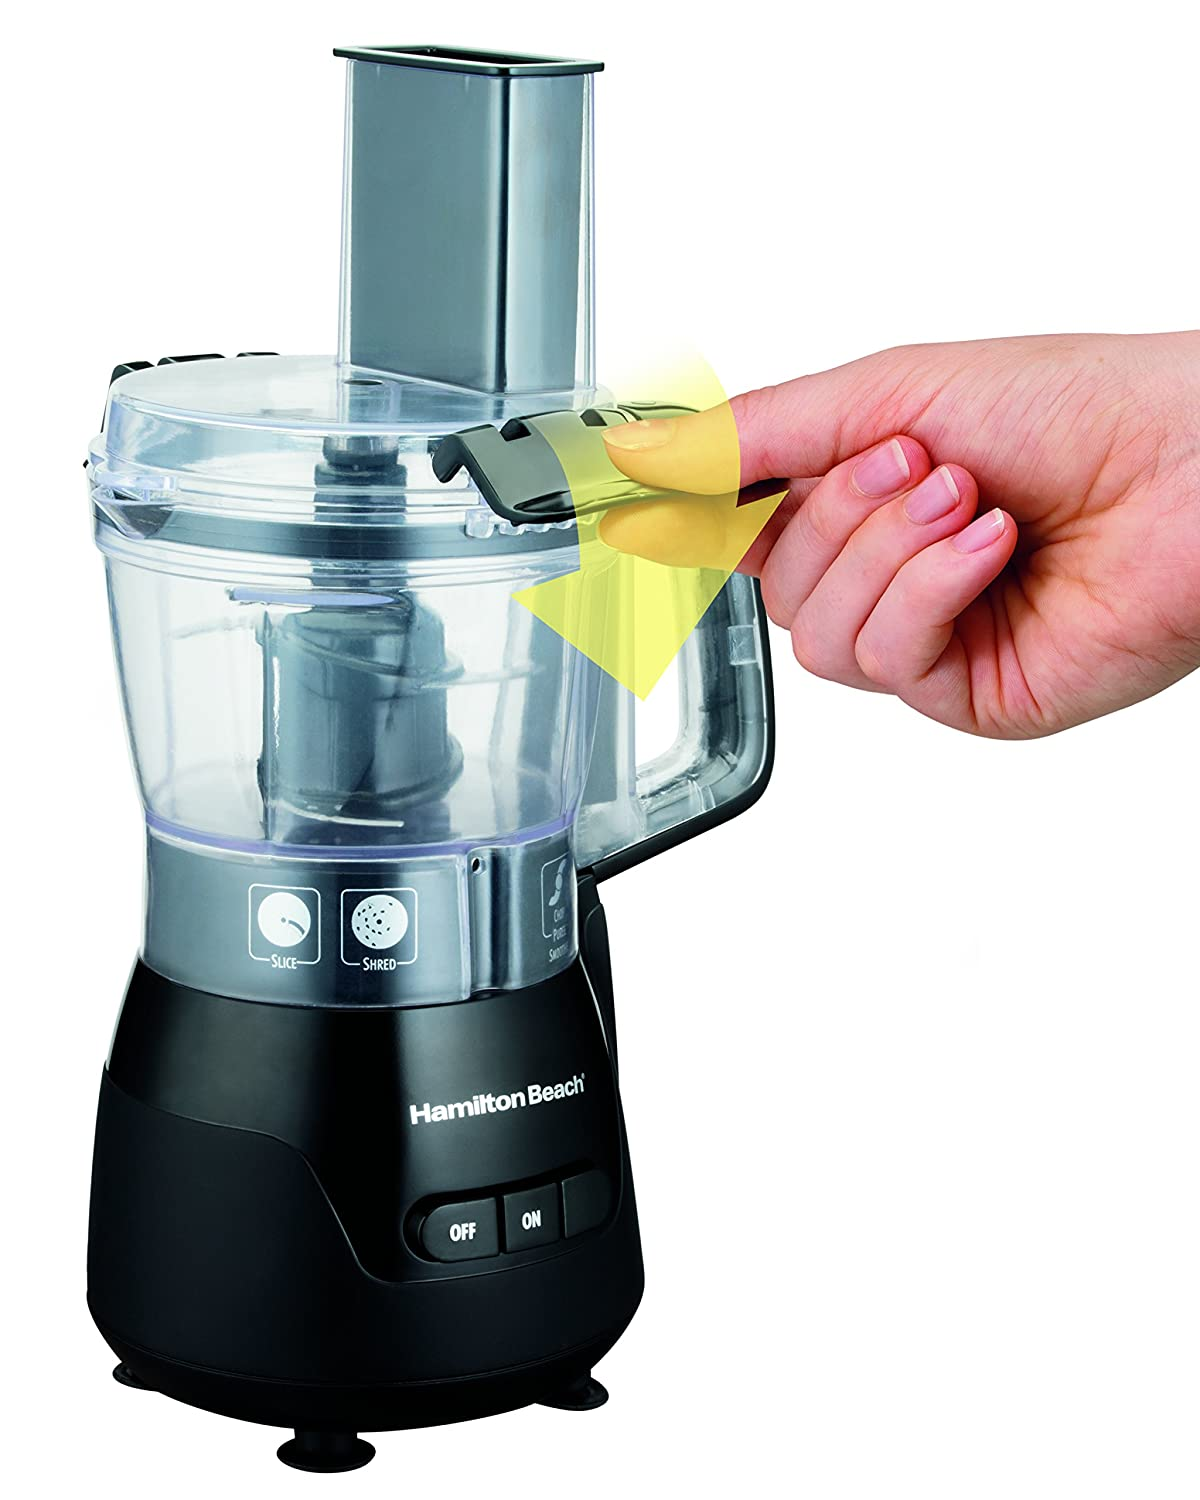 Amazon.com: Hamilton Beach (70510) Food Processor & Mini Chopper, 4 ...